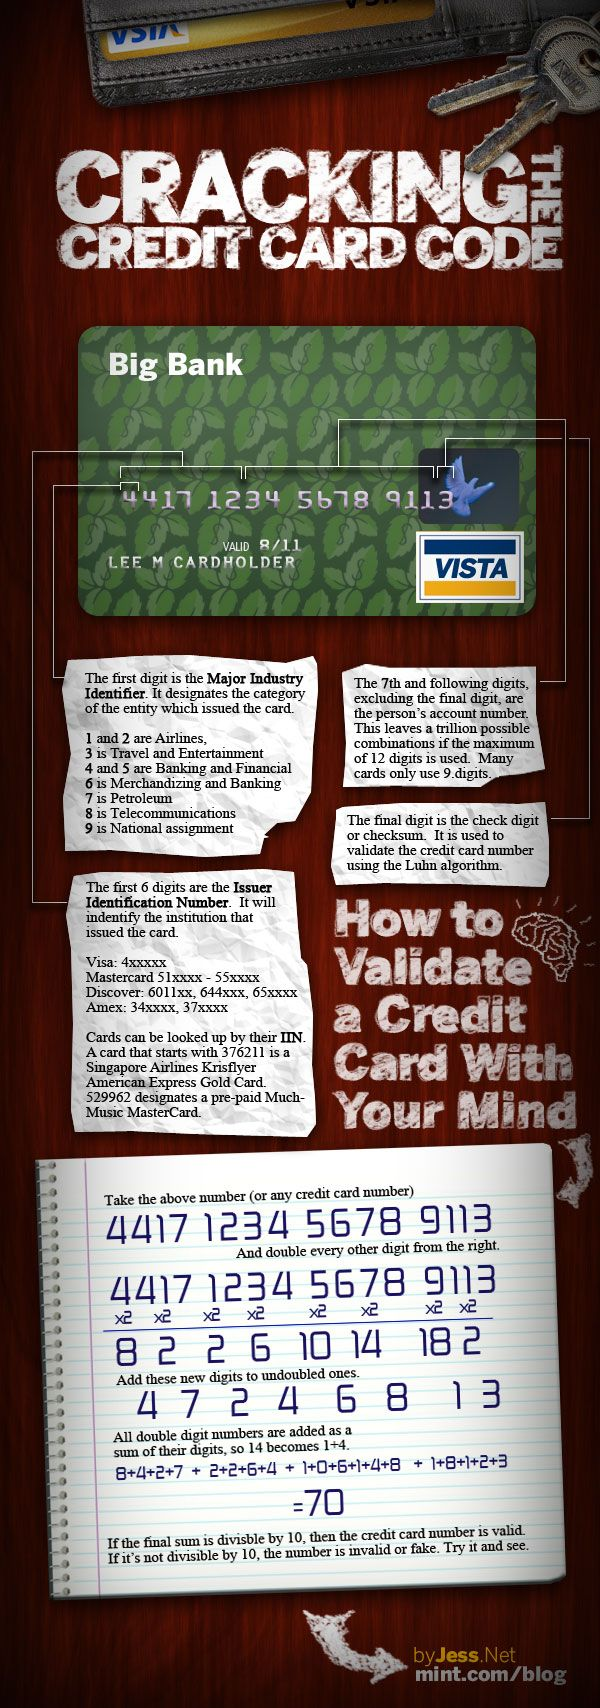 math is cool.Math, Numbers, Social Media, Credit Cards, Creditcard, Cards Codes, Education, Infographic, Info Graphics